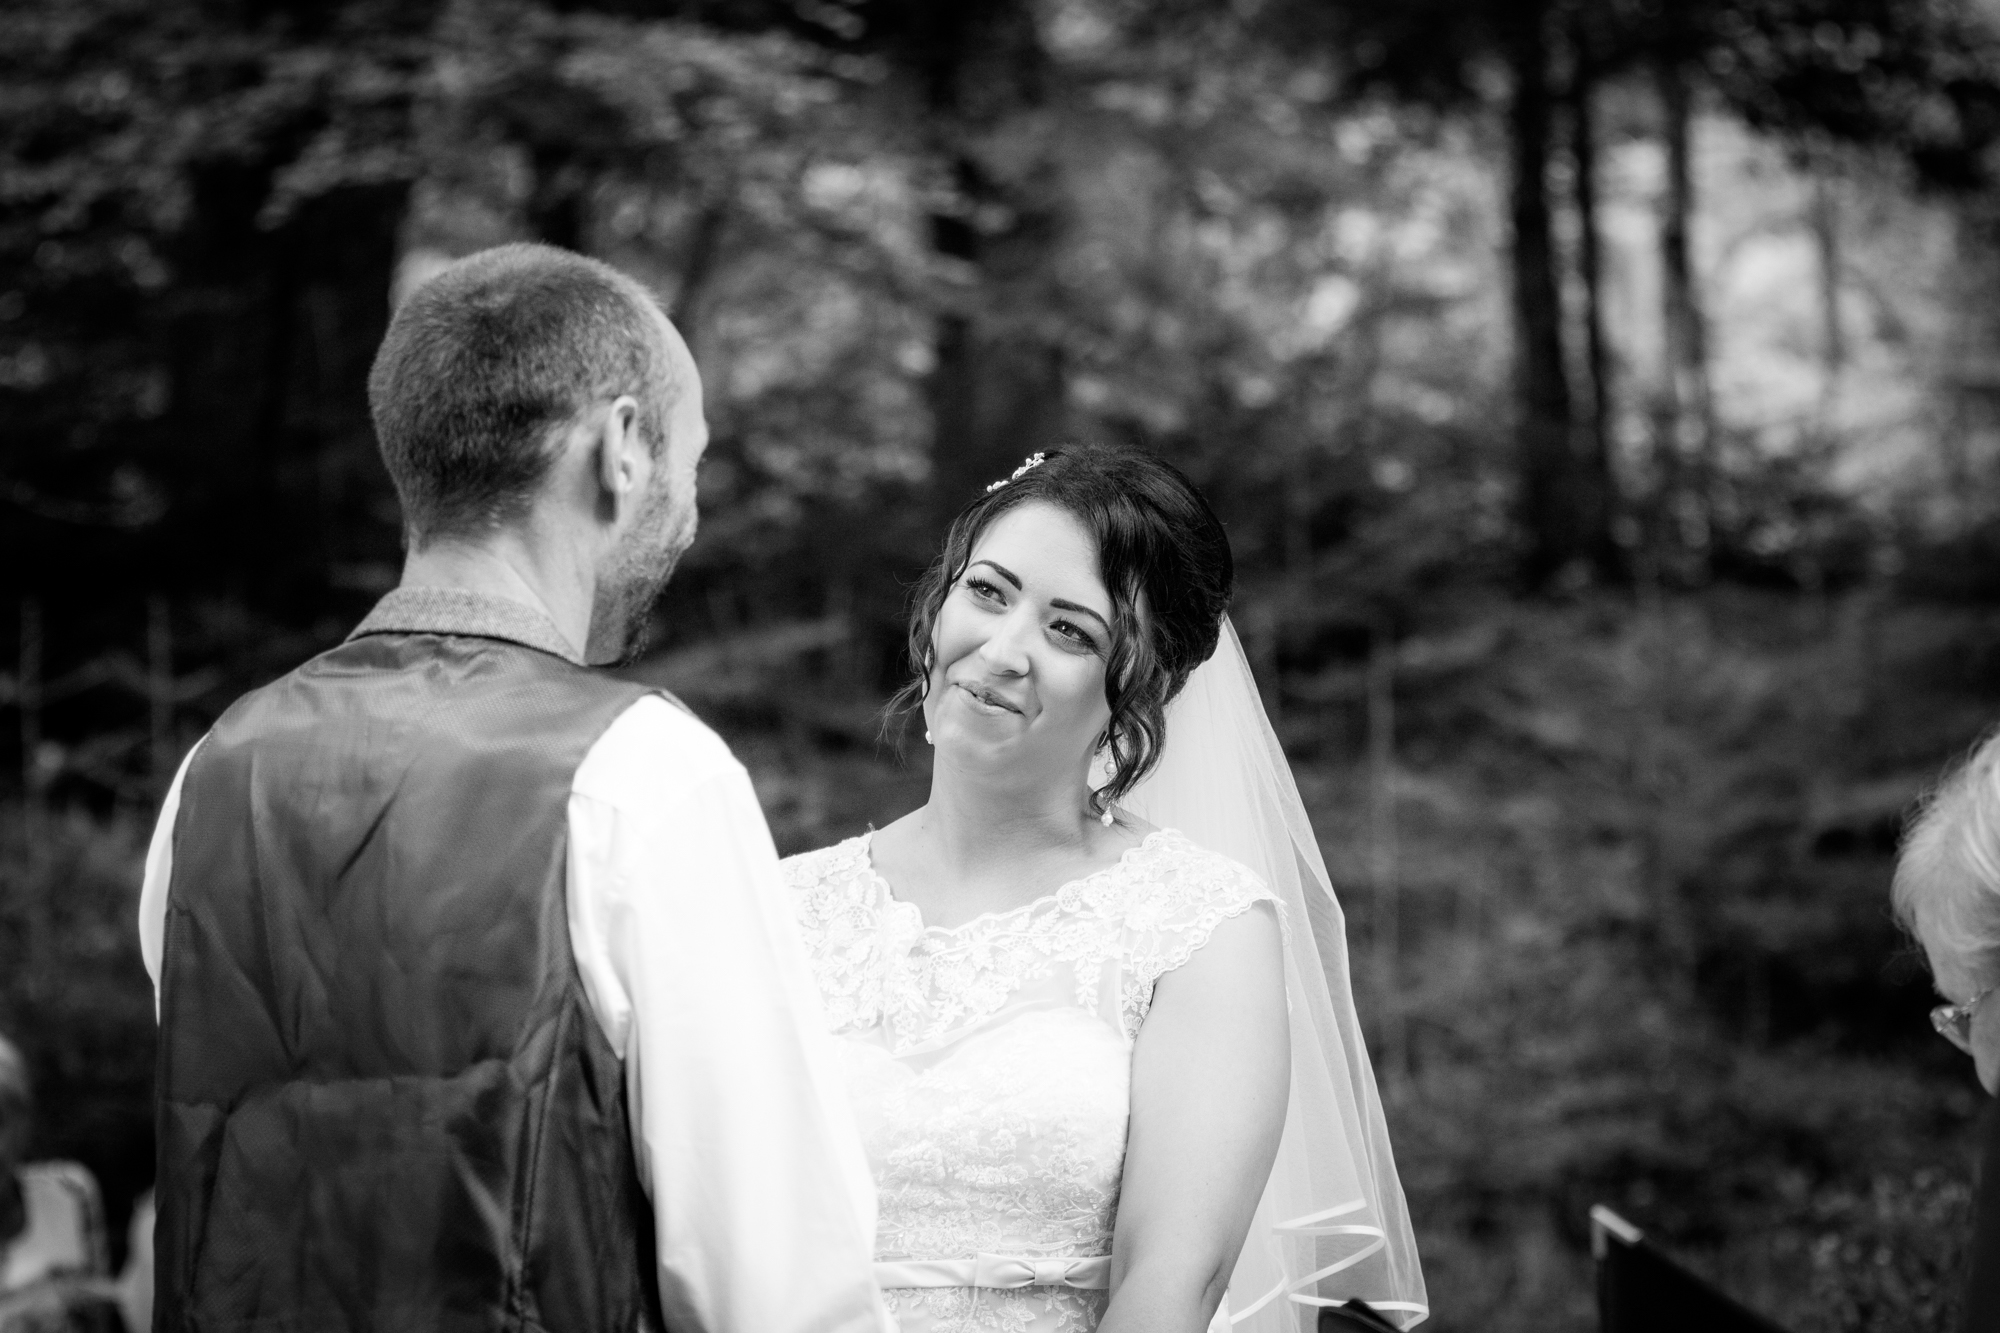 Laura Marie & Ross - Tollymore Forest Park Outdoor Wedding, Photo By Andrew McKenna Photography Newcastle County Down, Northern Ireland. (www.amckphotography.com)